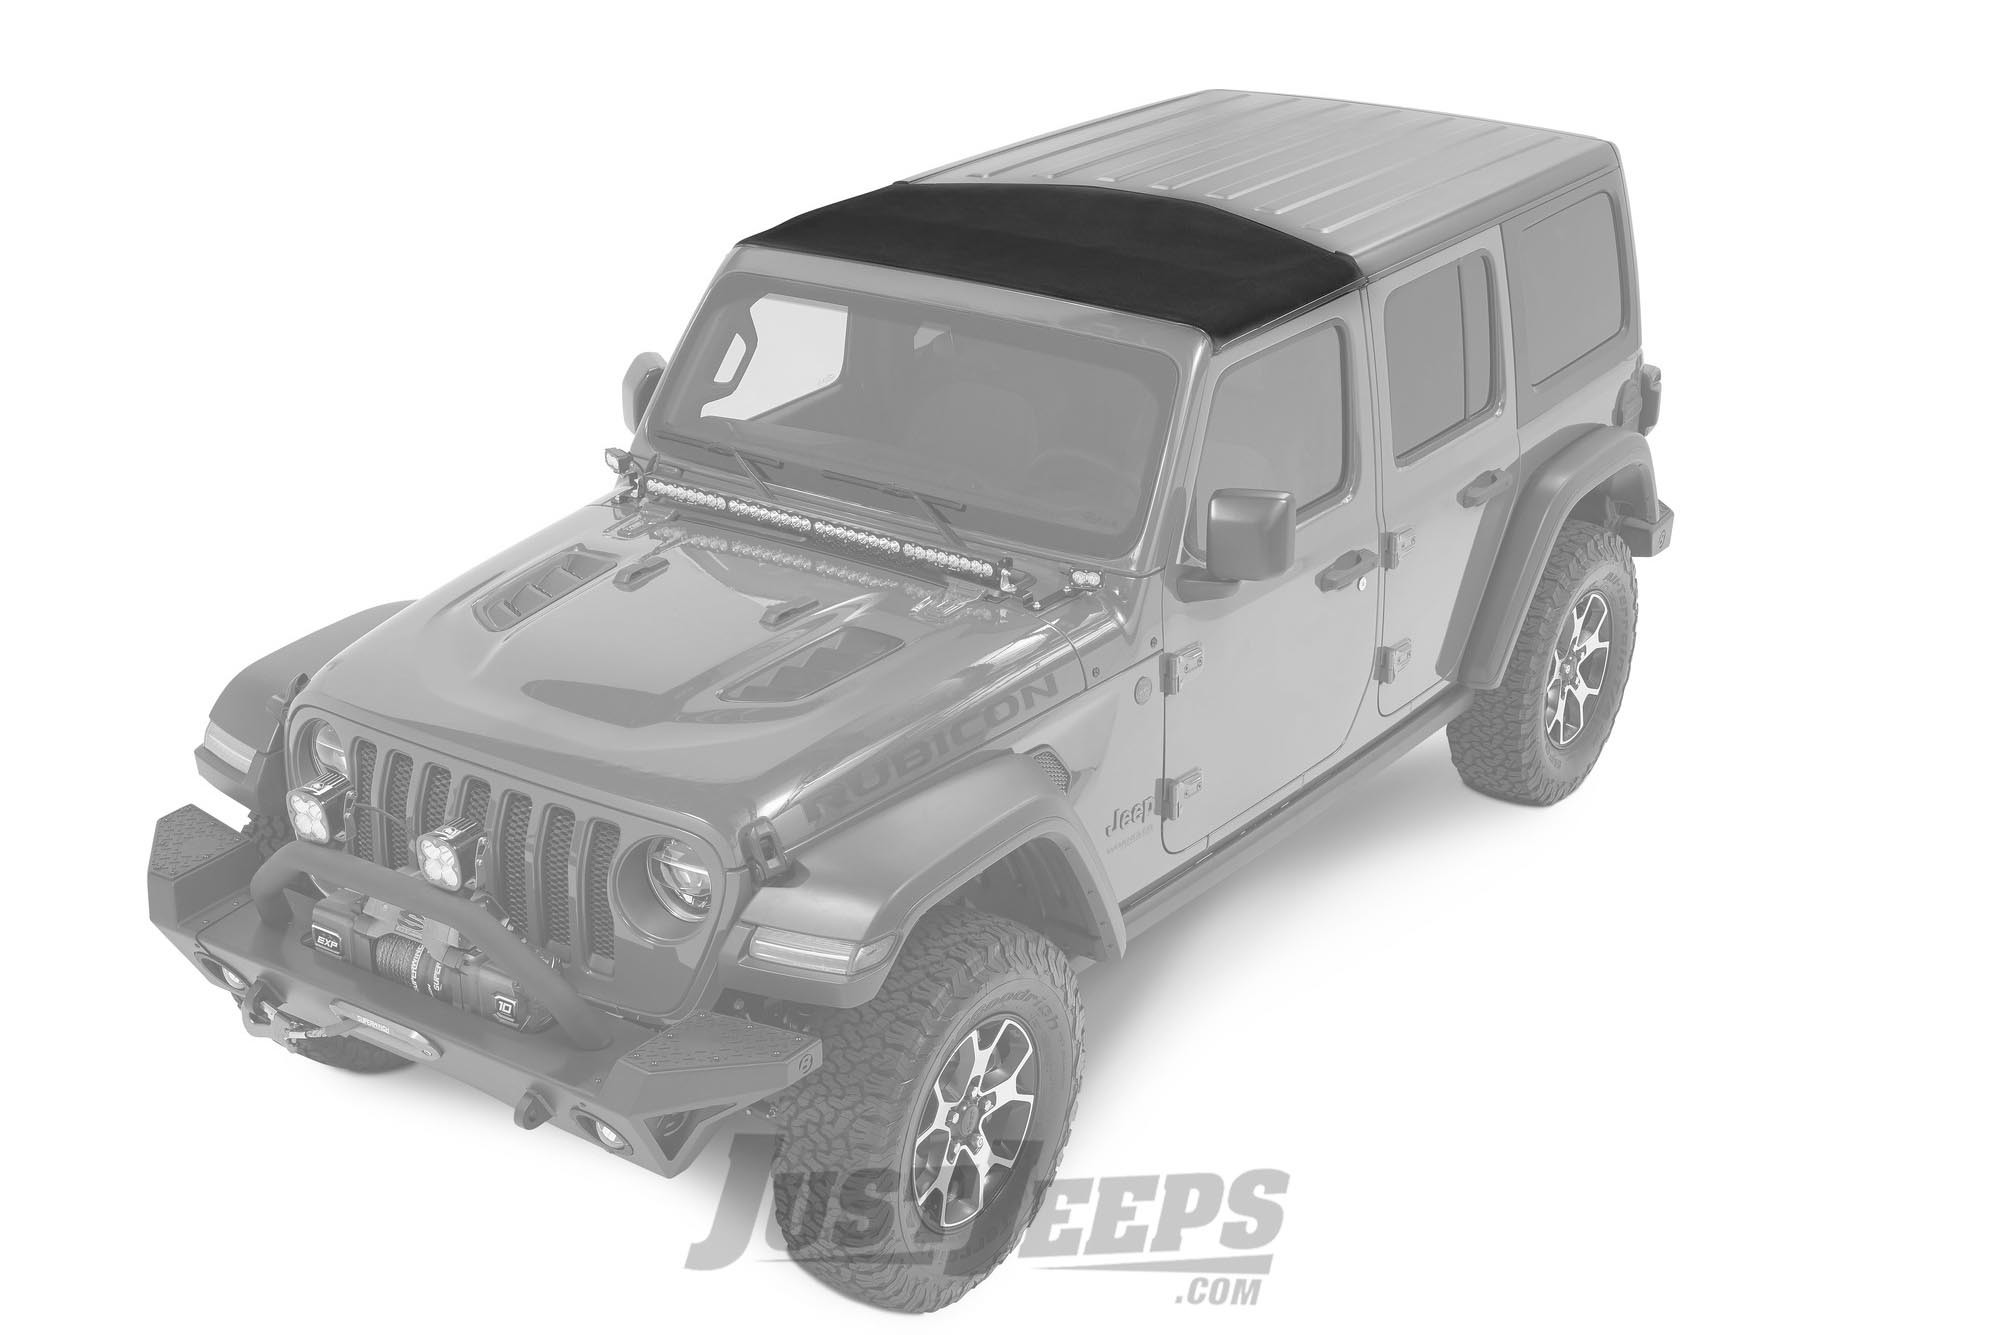 Bestop Sunrider Hardtop For 2018+ Jeep Wrangler JL 2 Door & Unlimited 4 Door Models